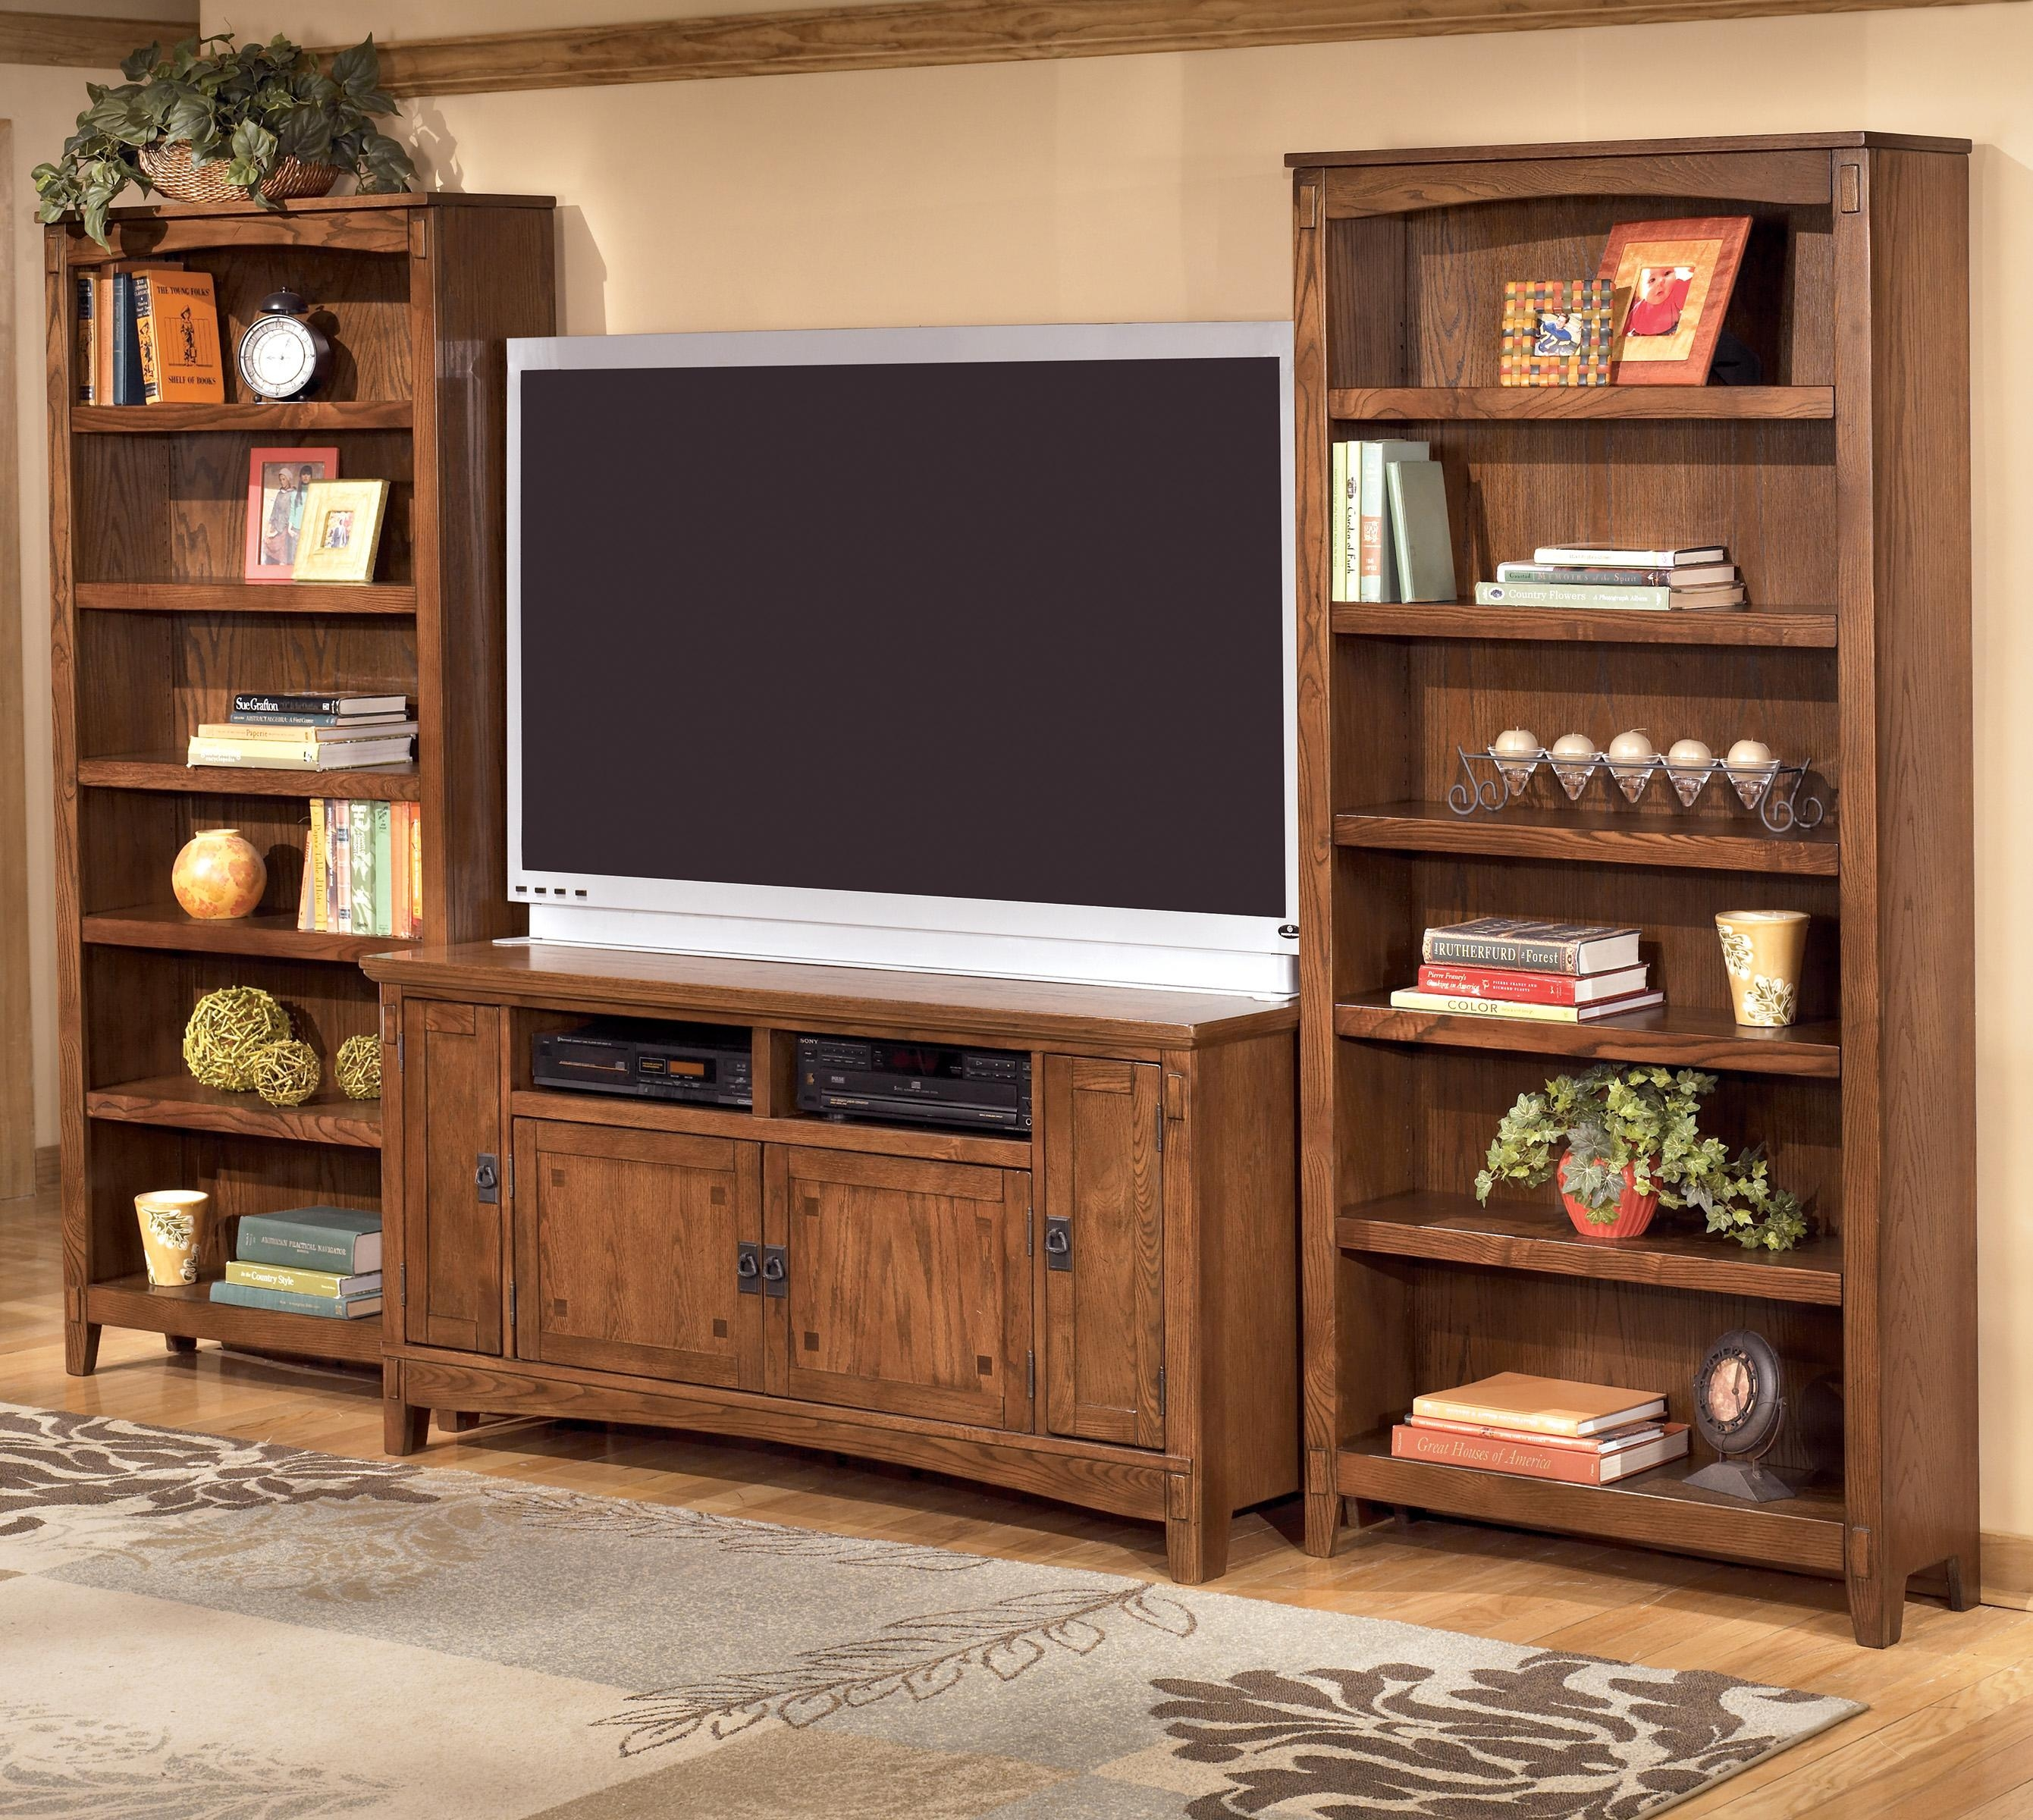 Ashley Furniture Cross Island 60 Inch Tv Stand 2 Large Bookcases Throughout Tv In Bookcase (#1 of 14)